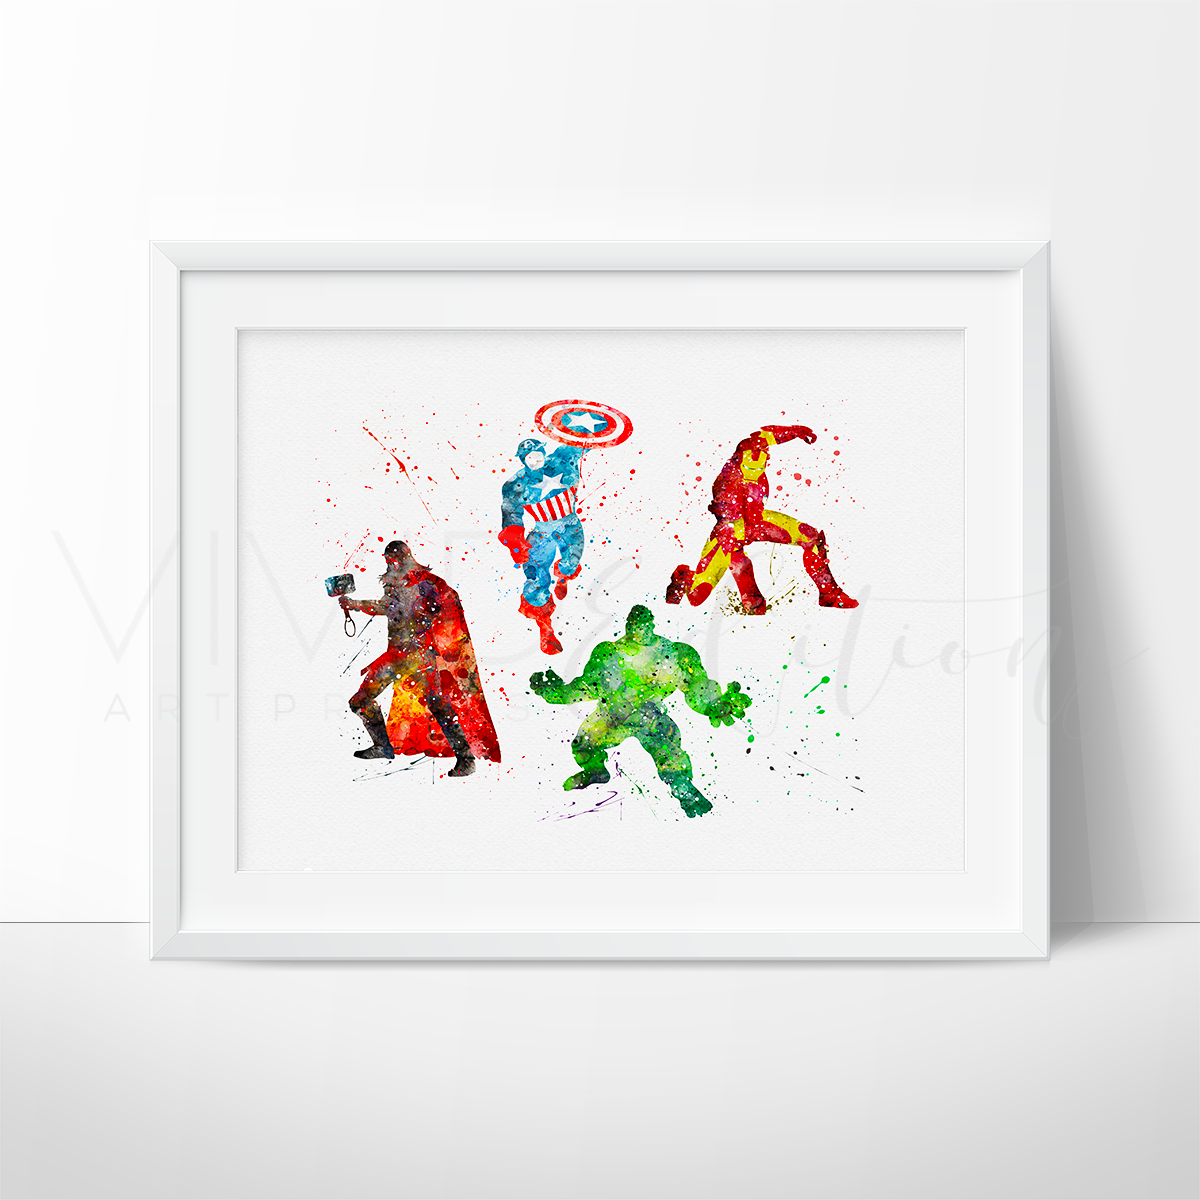 Avengers Superheroes Watercolor Art Print Art Print - VIVIDEDITIONS